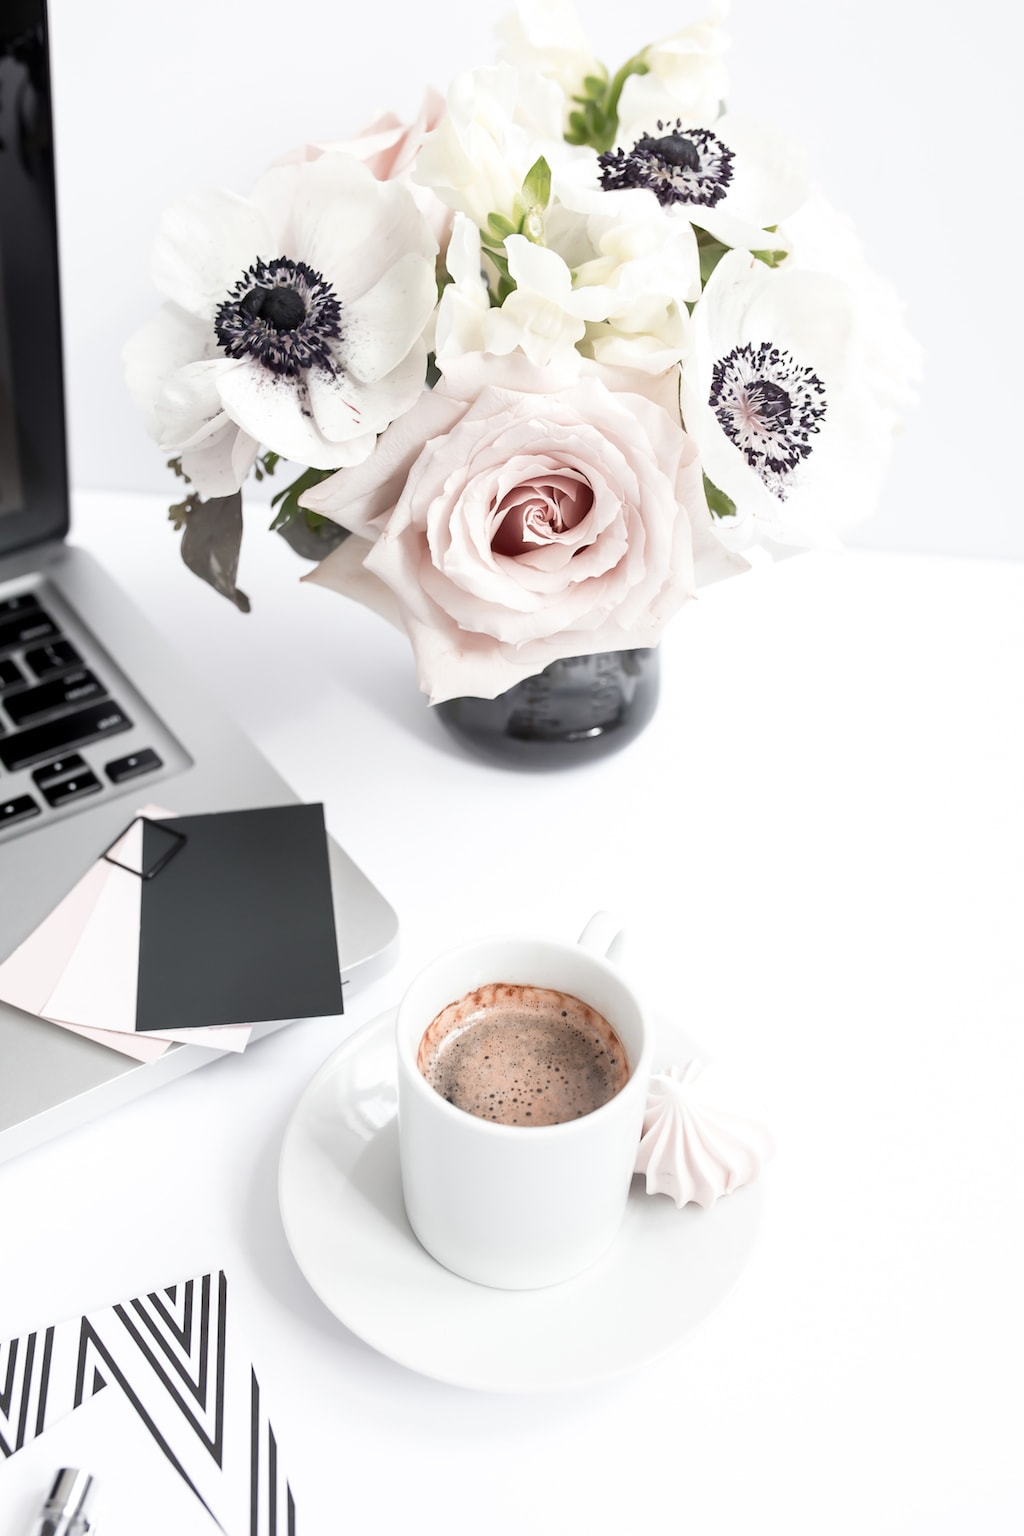 Flowers and coffee on a desk.